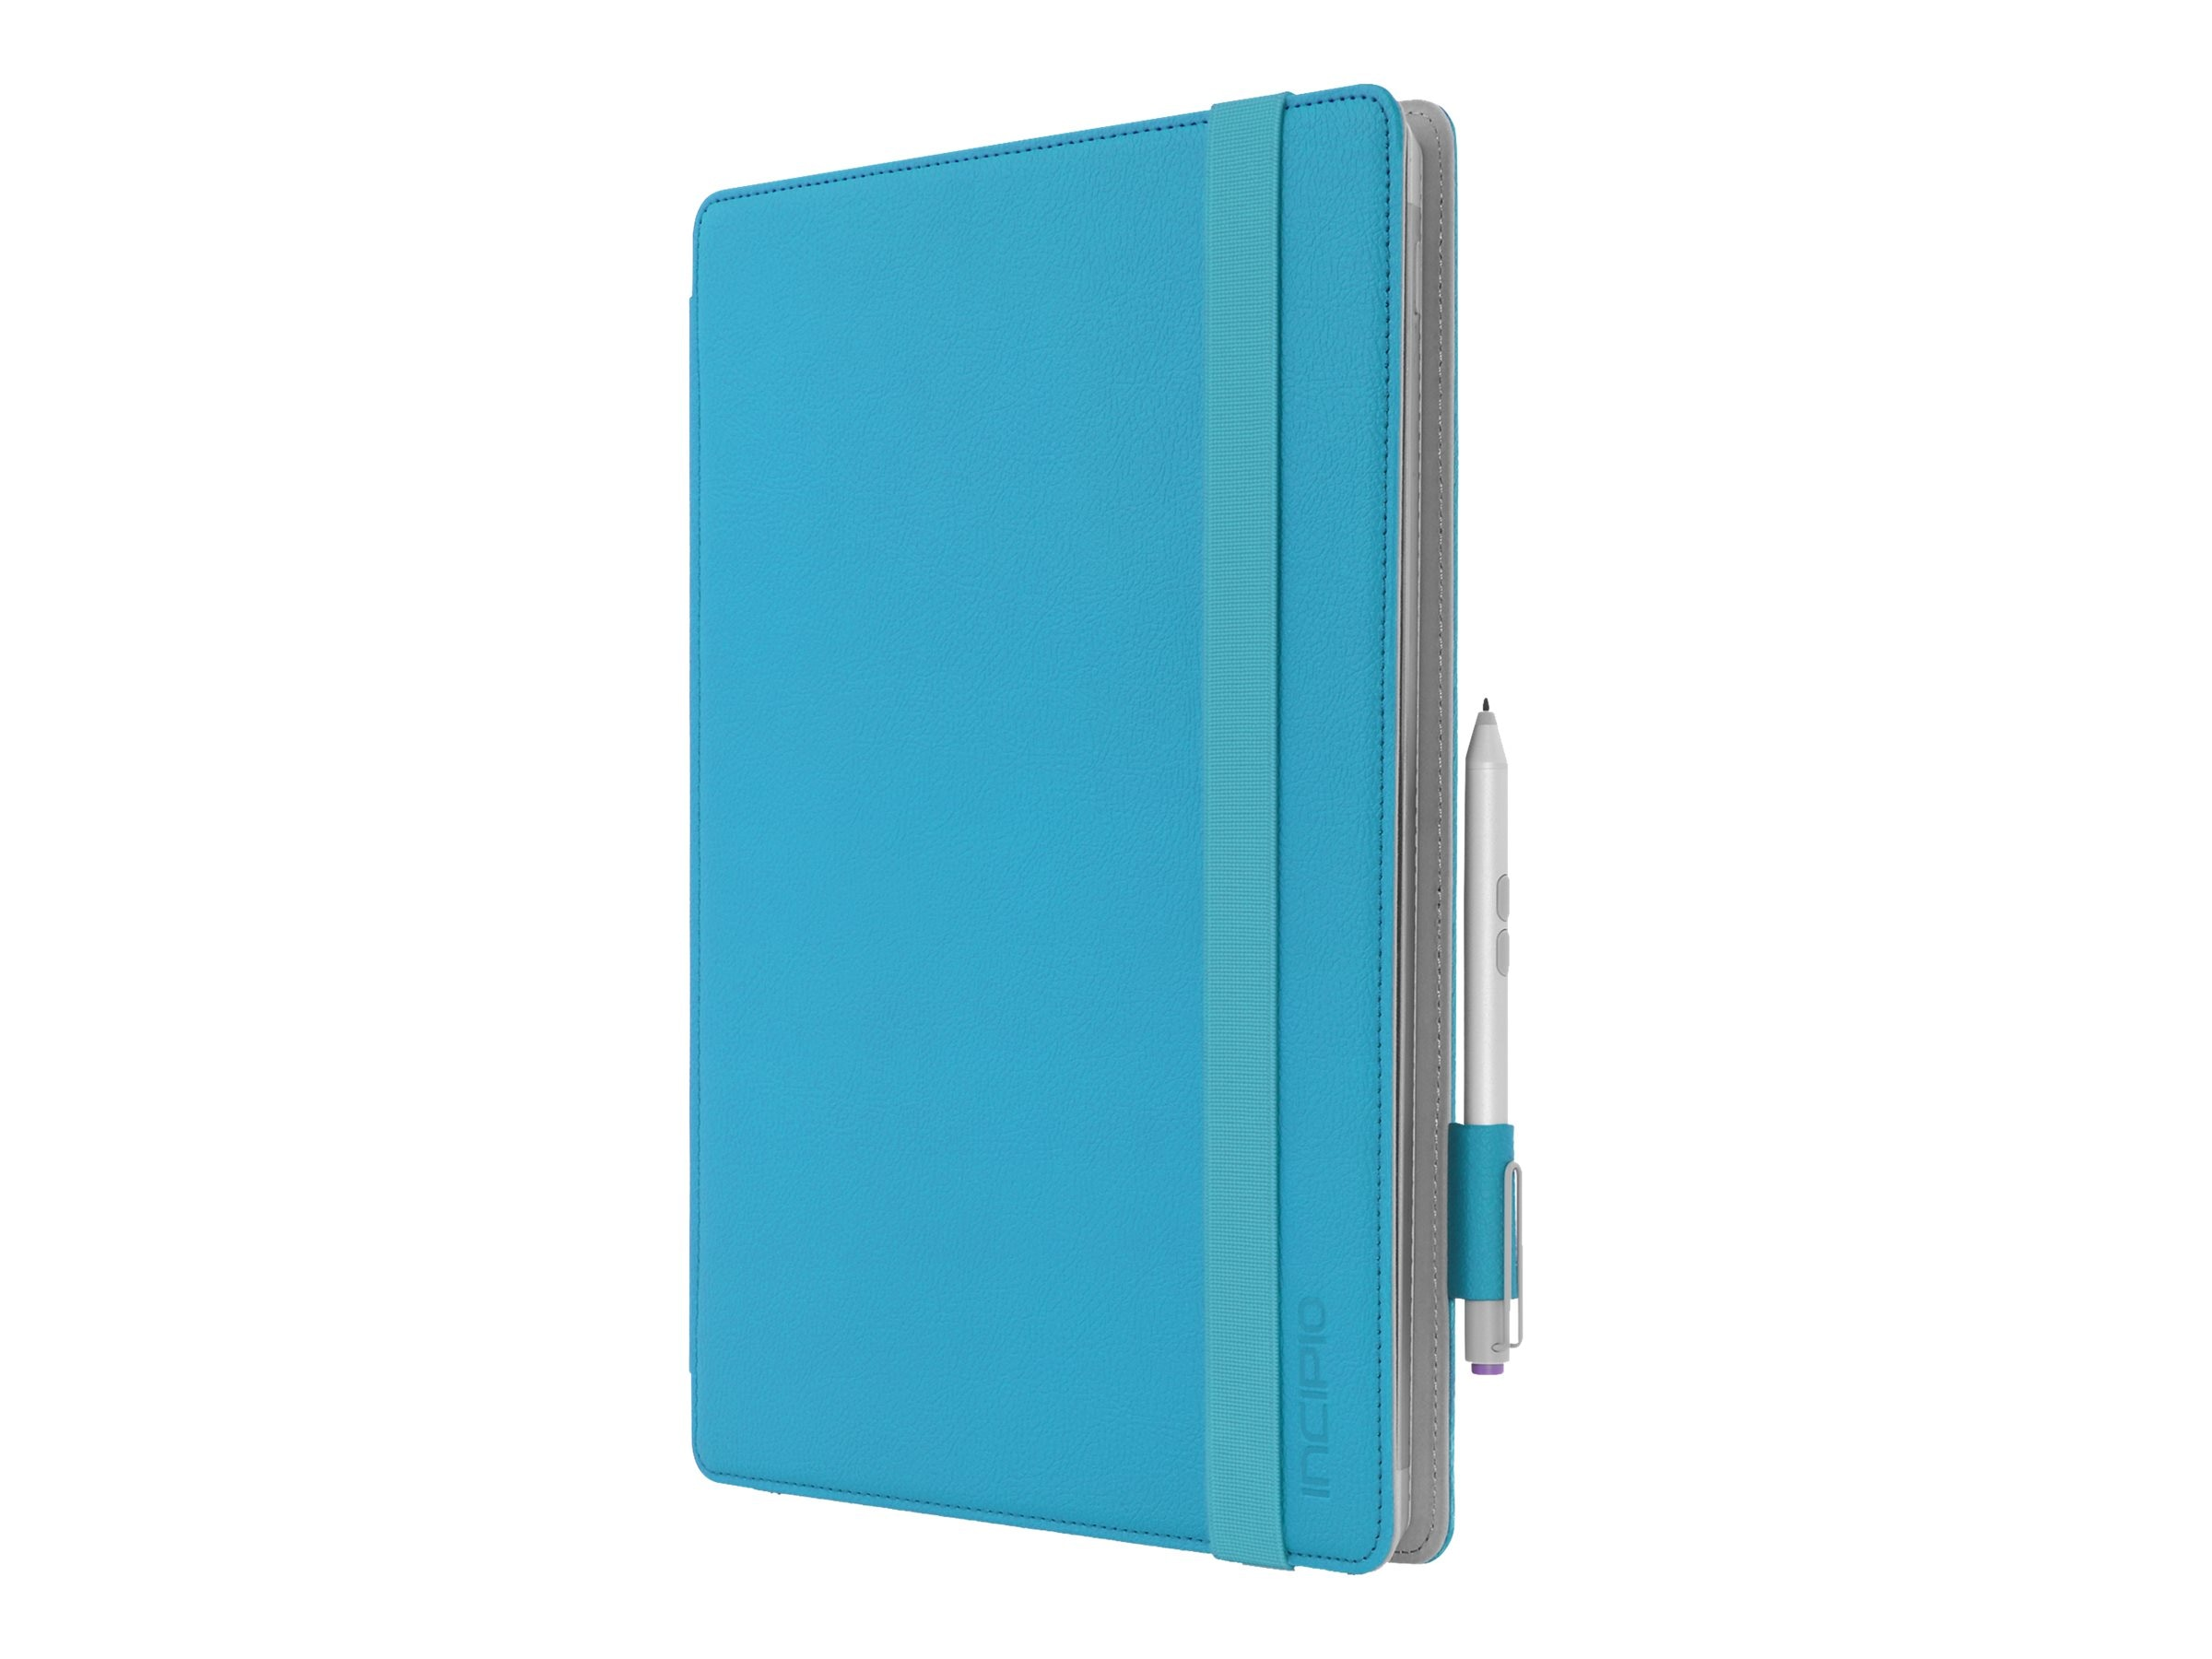 Incipio Roosevelt Slim Folio w  Snap-On Type Cover Compatibility for Microsoft Surface Pro 3 & 4, Cyan, MRSF-070-CYN, 31201454, Carrying Cases - Tablets & eReaders